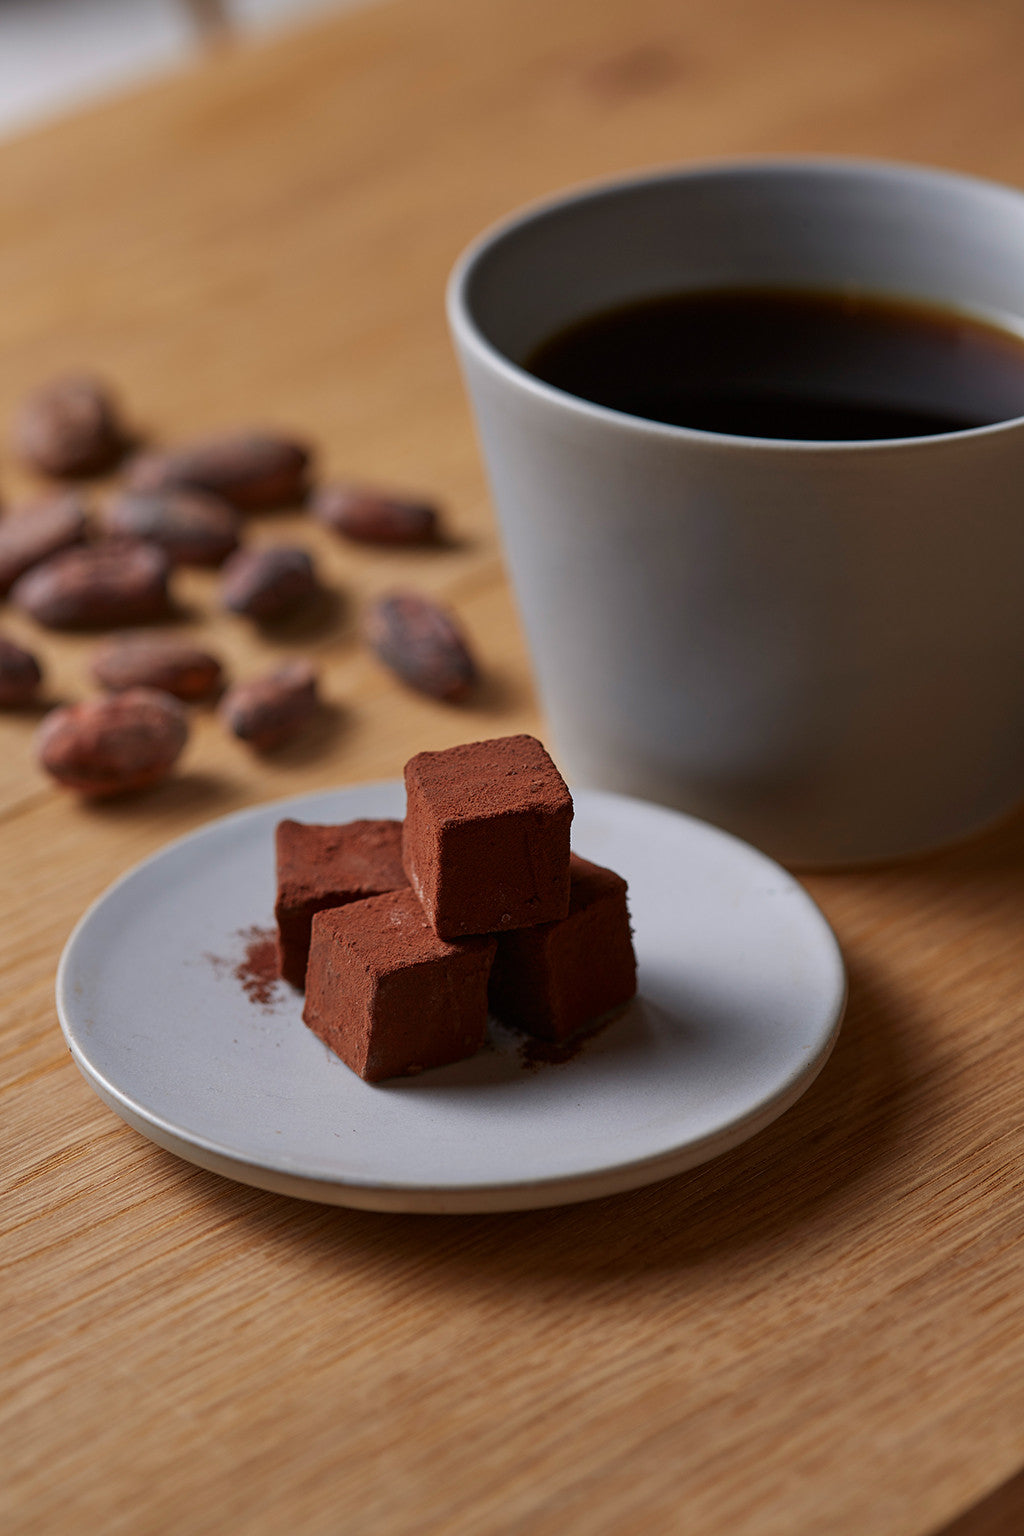 cacao×VERVE COFFEE ROASTERS「小町通りの石畳 VERVE COFFEE」